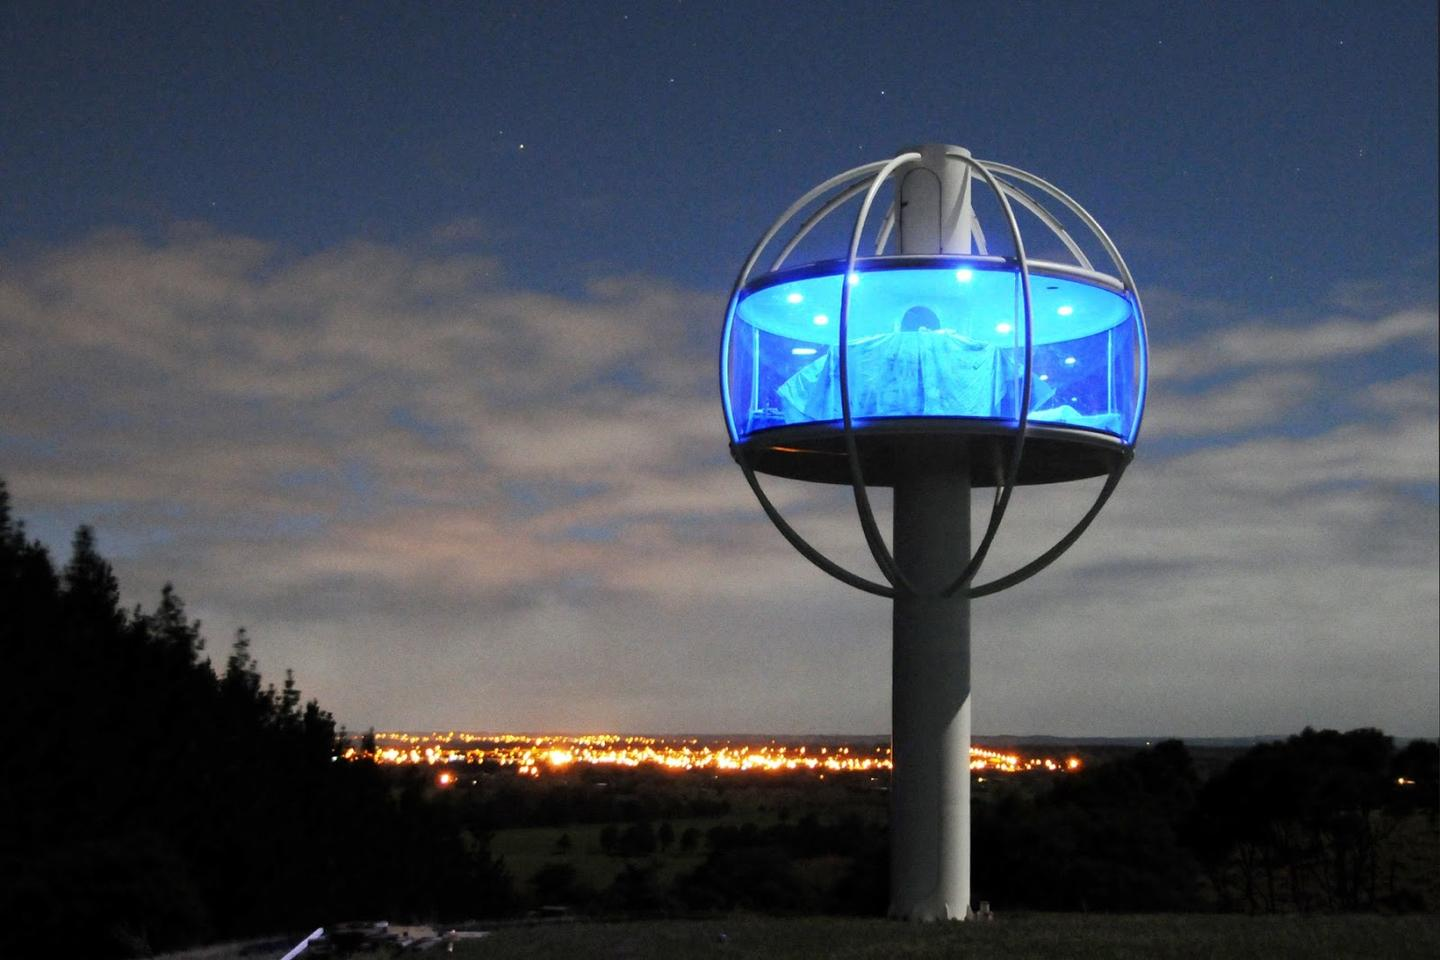 The Skysphere provides a 360-degree viewing window that is 2 m (7 ft) high and has a circumference of 14 m (46 ft)